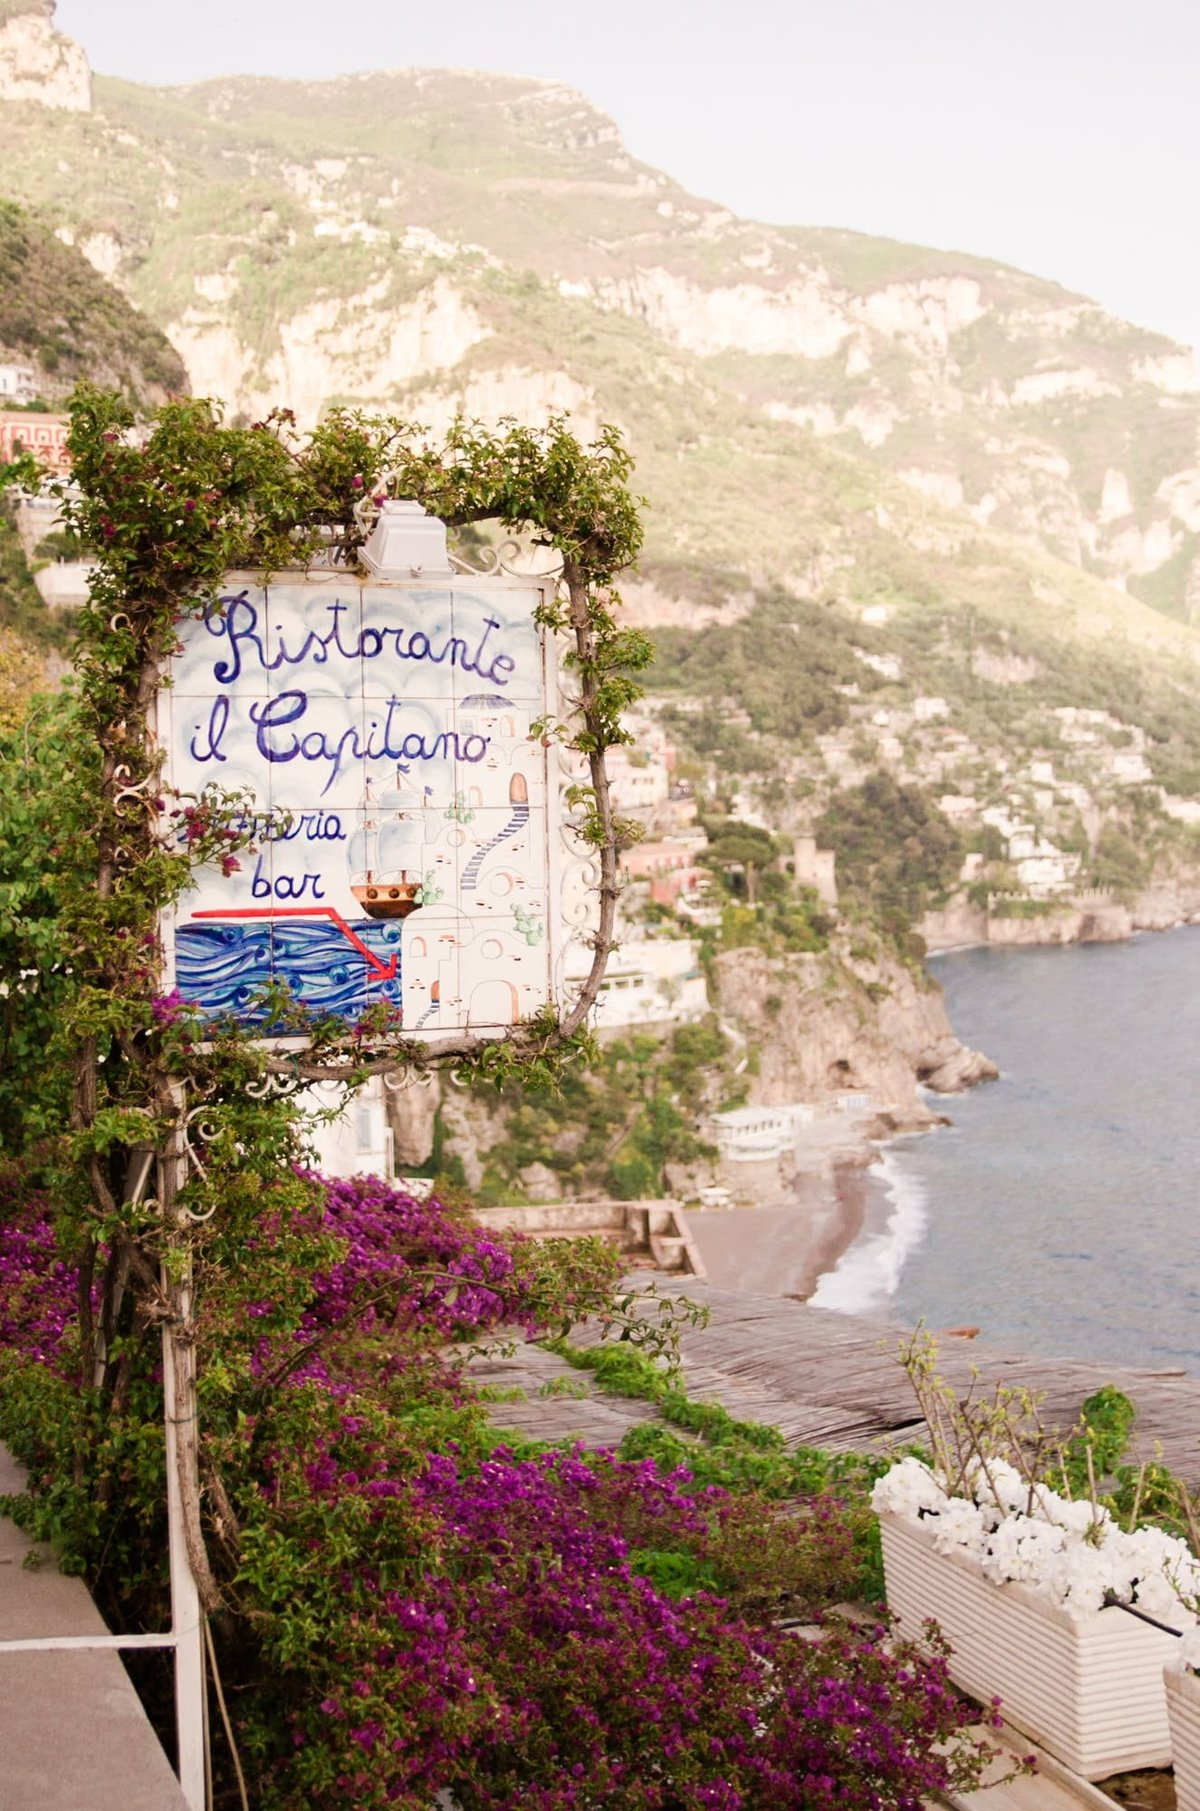 Positano, Session, Shooting, Photography, Italy, Amalfi, Coast, Photographer, Couple, Florent, Vin, Love, Photo, Honeymoon, Wedding, Pre, Shoot, Engagement, Proposal, Destination